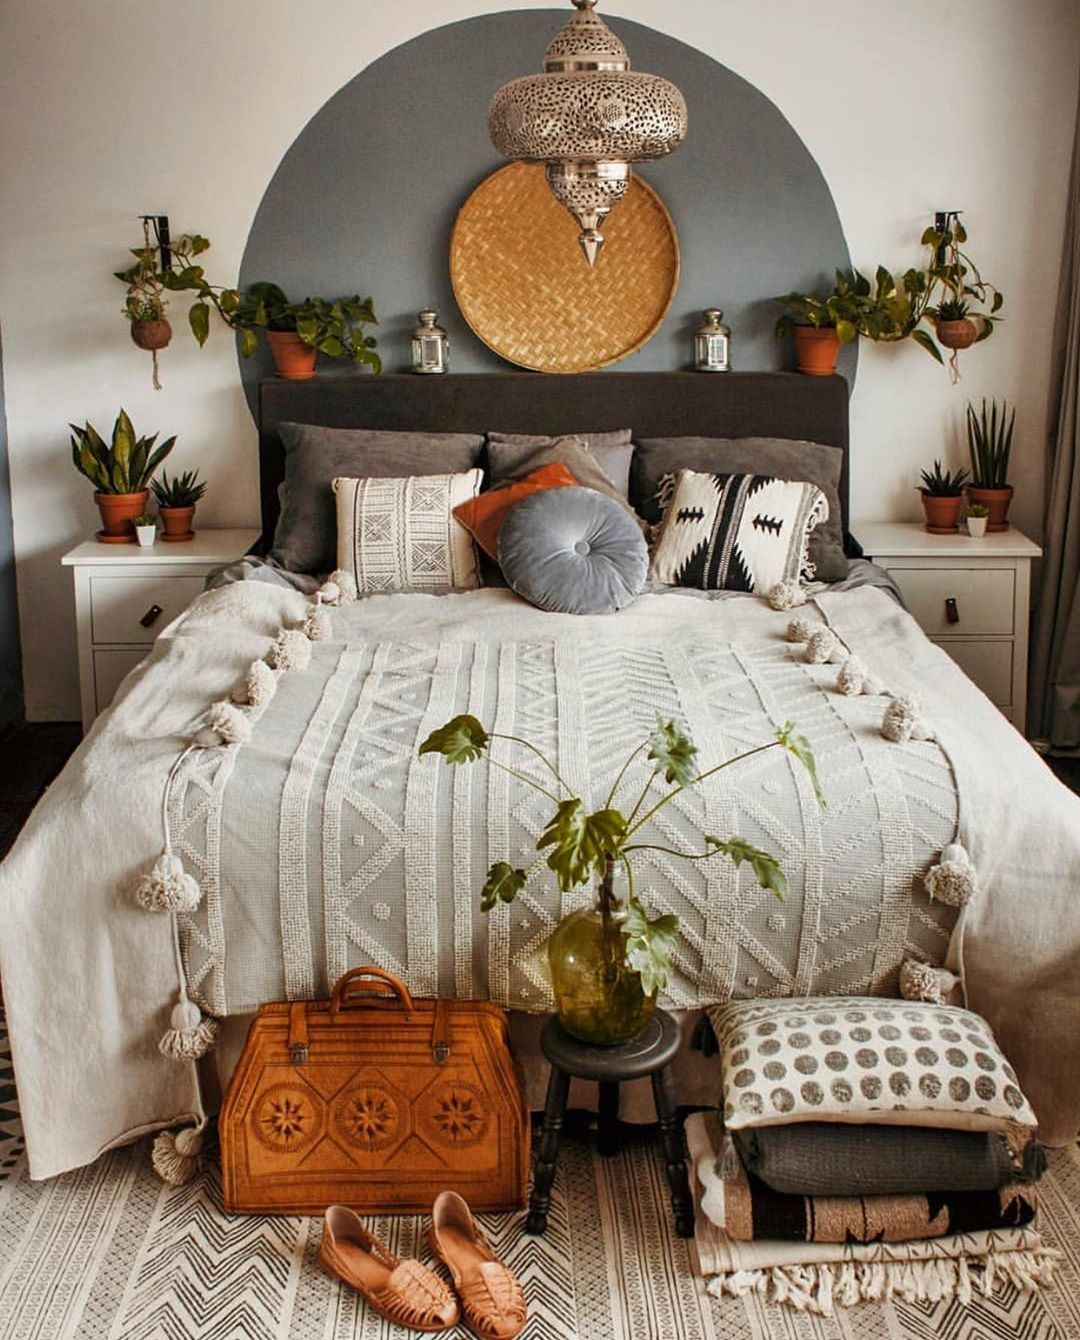 Best Enhance The Home Beauty With Bohemian Style Beds Home 400 x 300